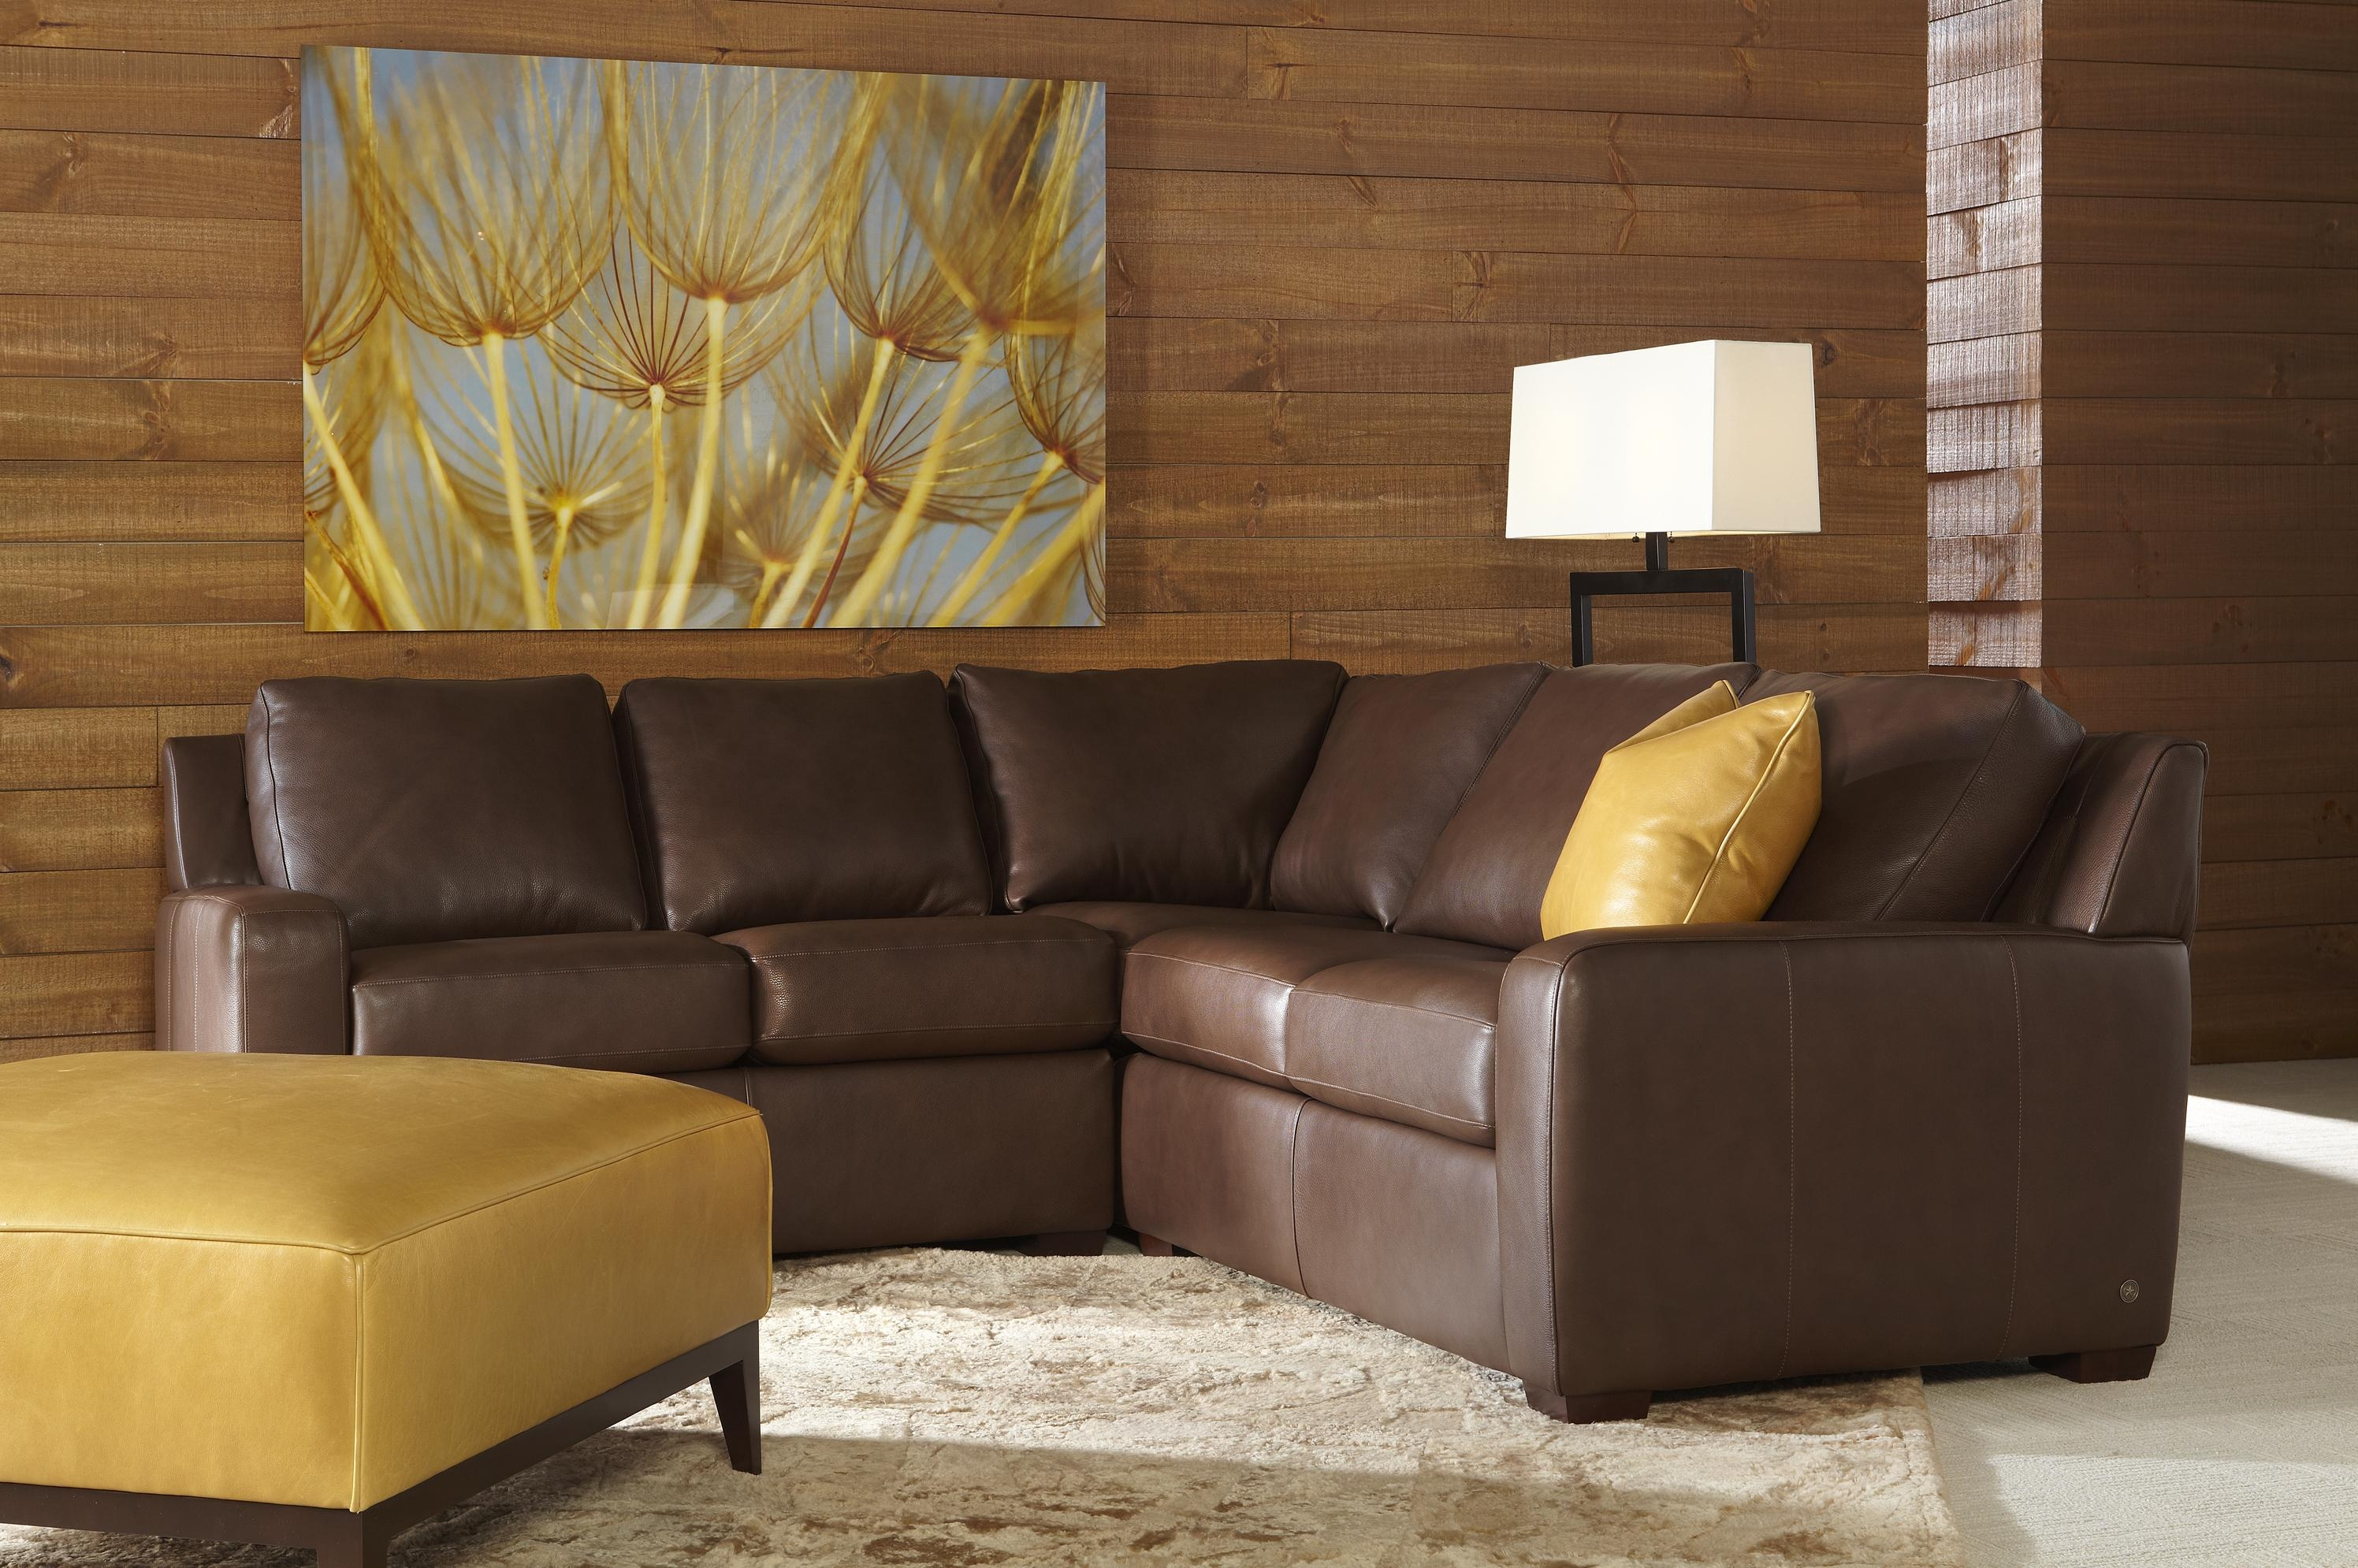 Sectional Sofas – Elegance And Style Tailored Just For Youand For American Sofa Beds (View 13 of 22)